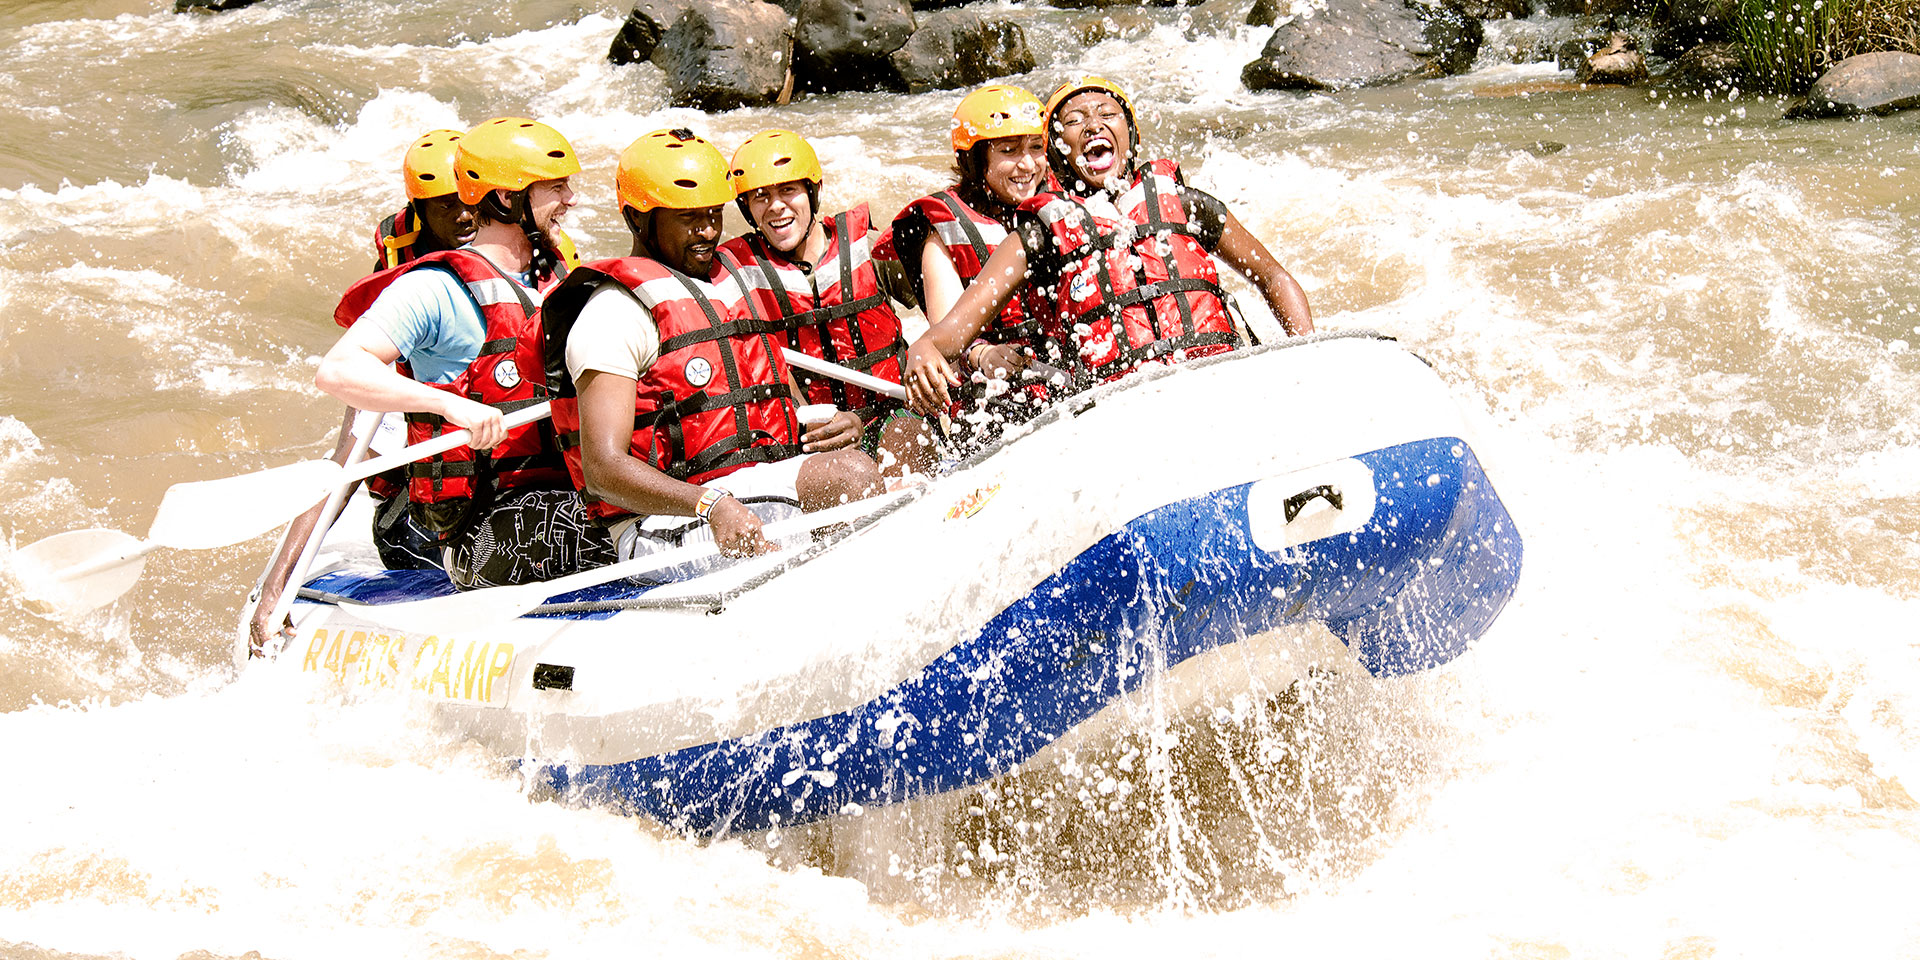 Rafting in acque cristalline